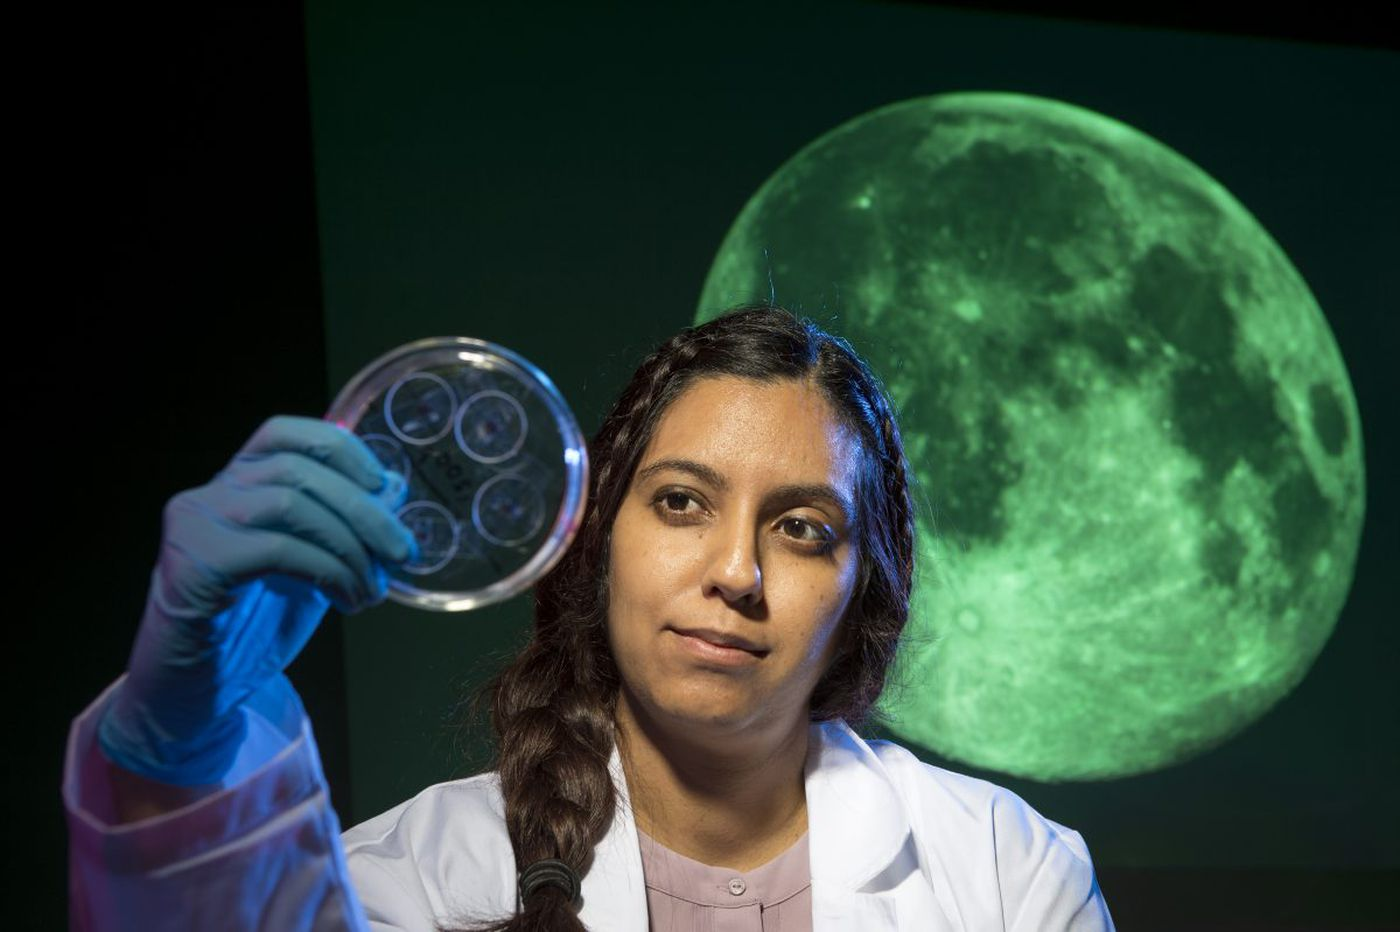 Why a Rutgers scientist heated up moon rocks